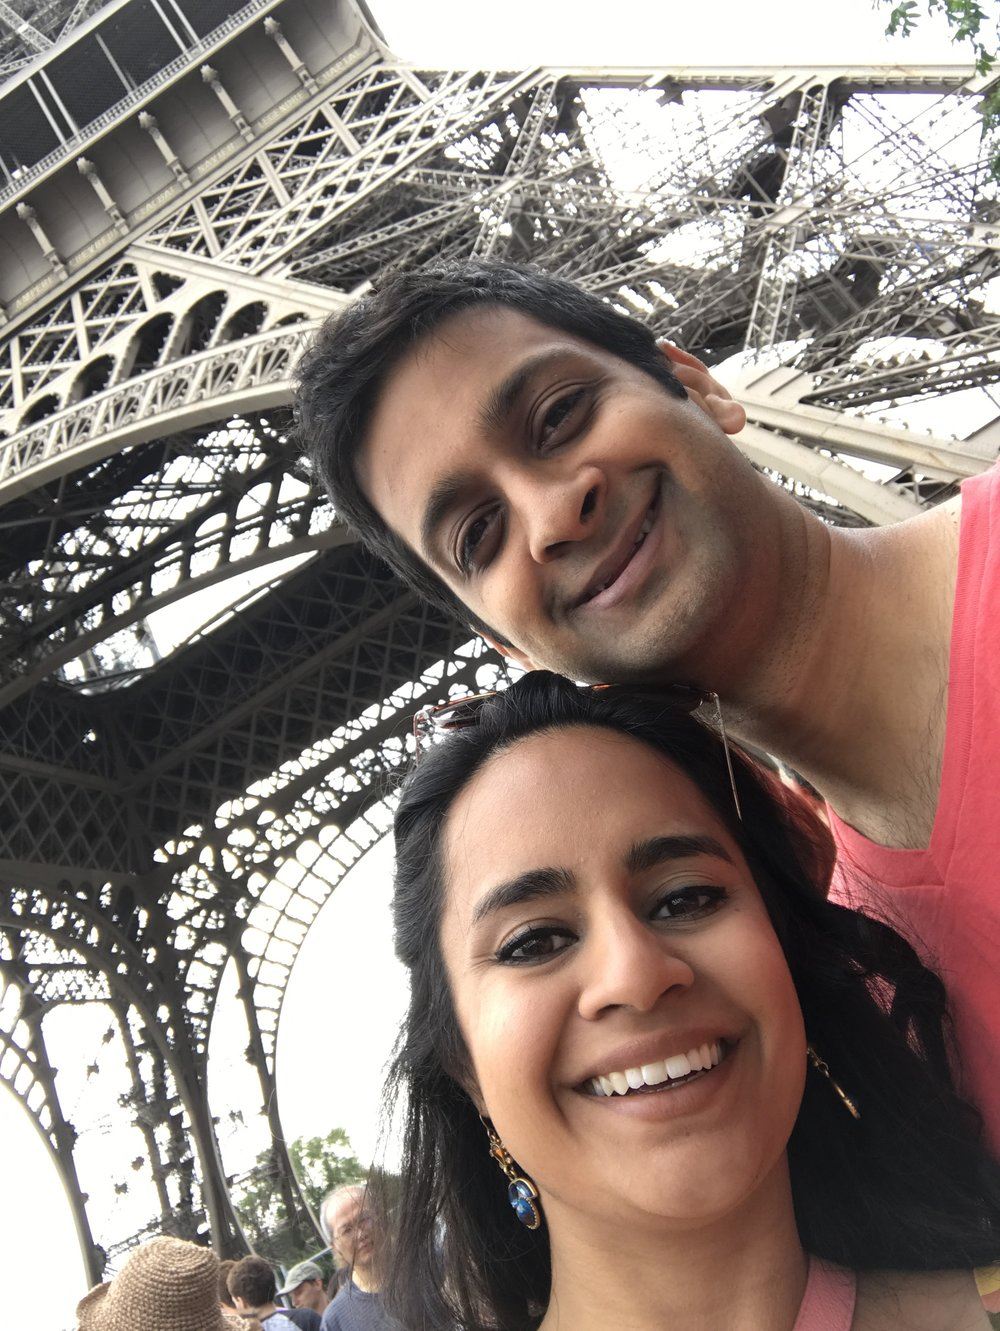 selfie under the Eiffel Tower